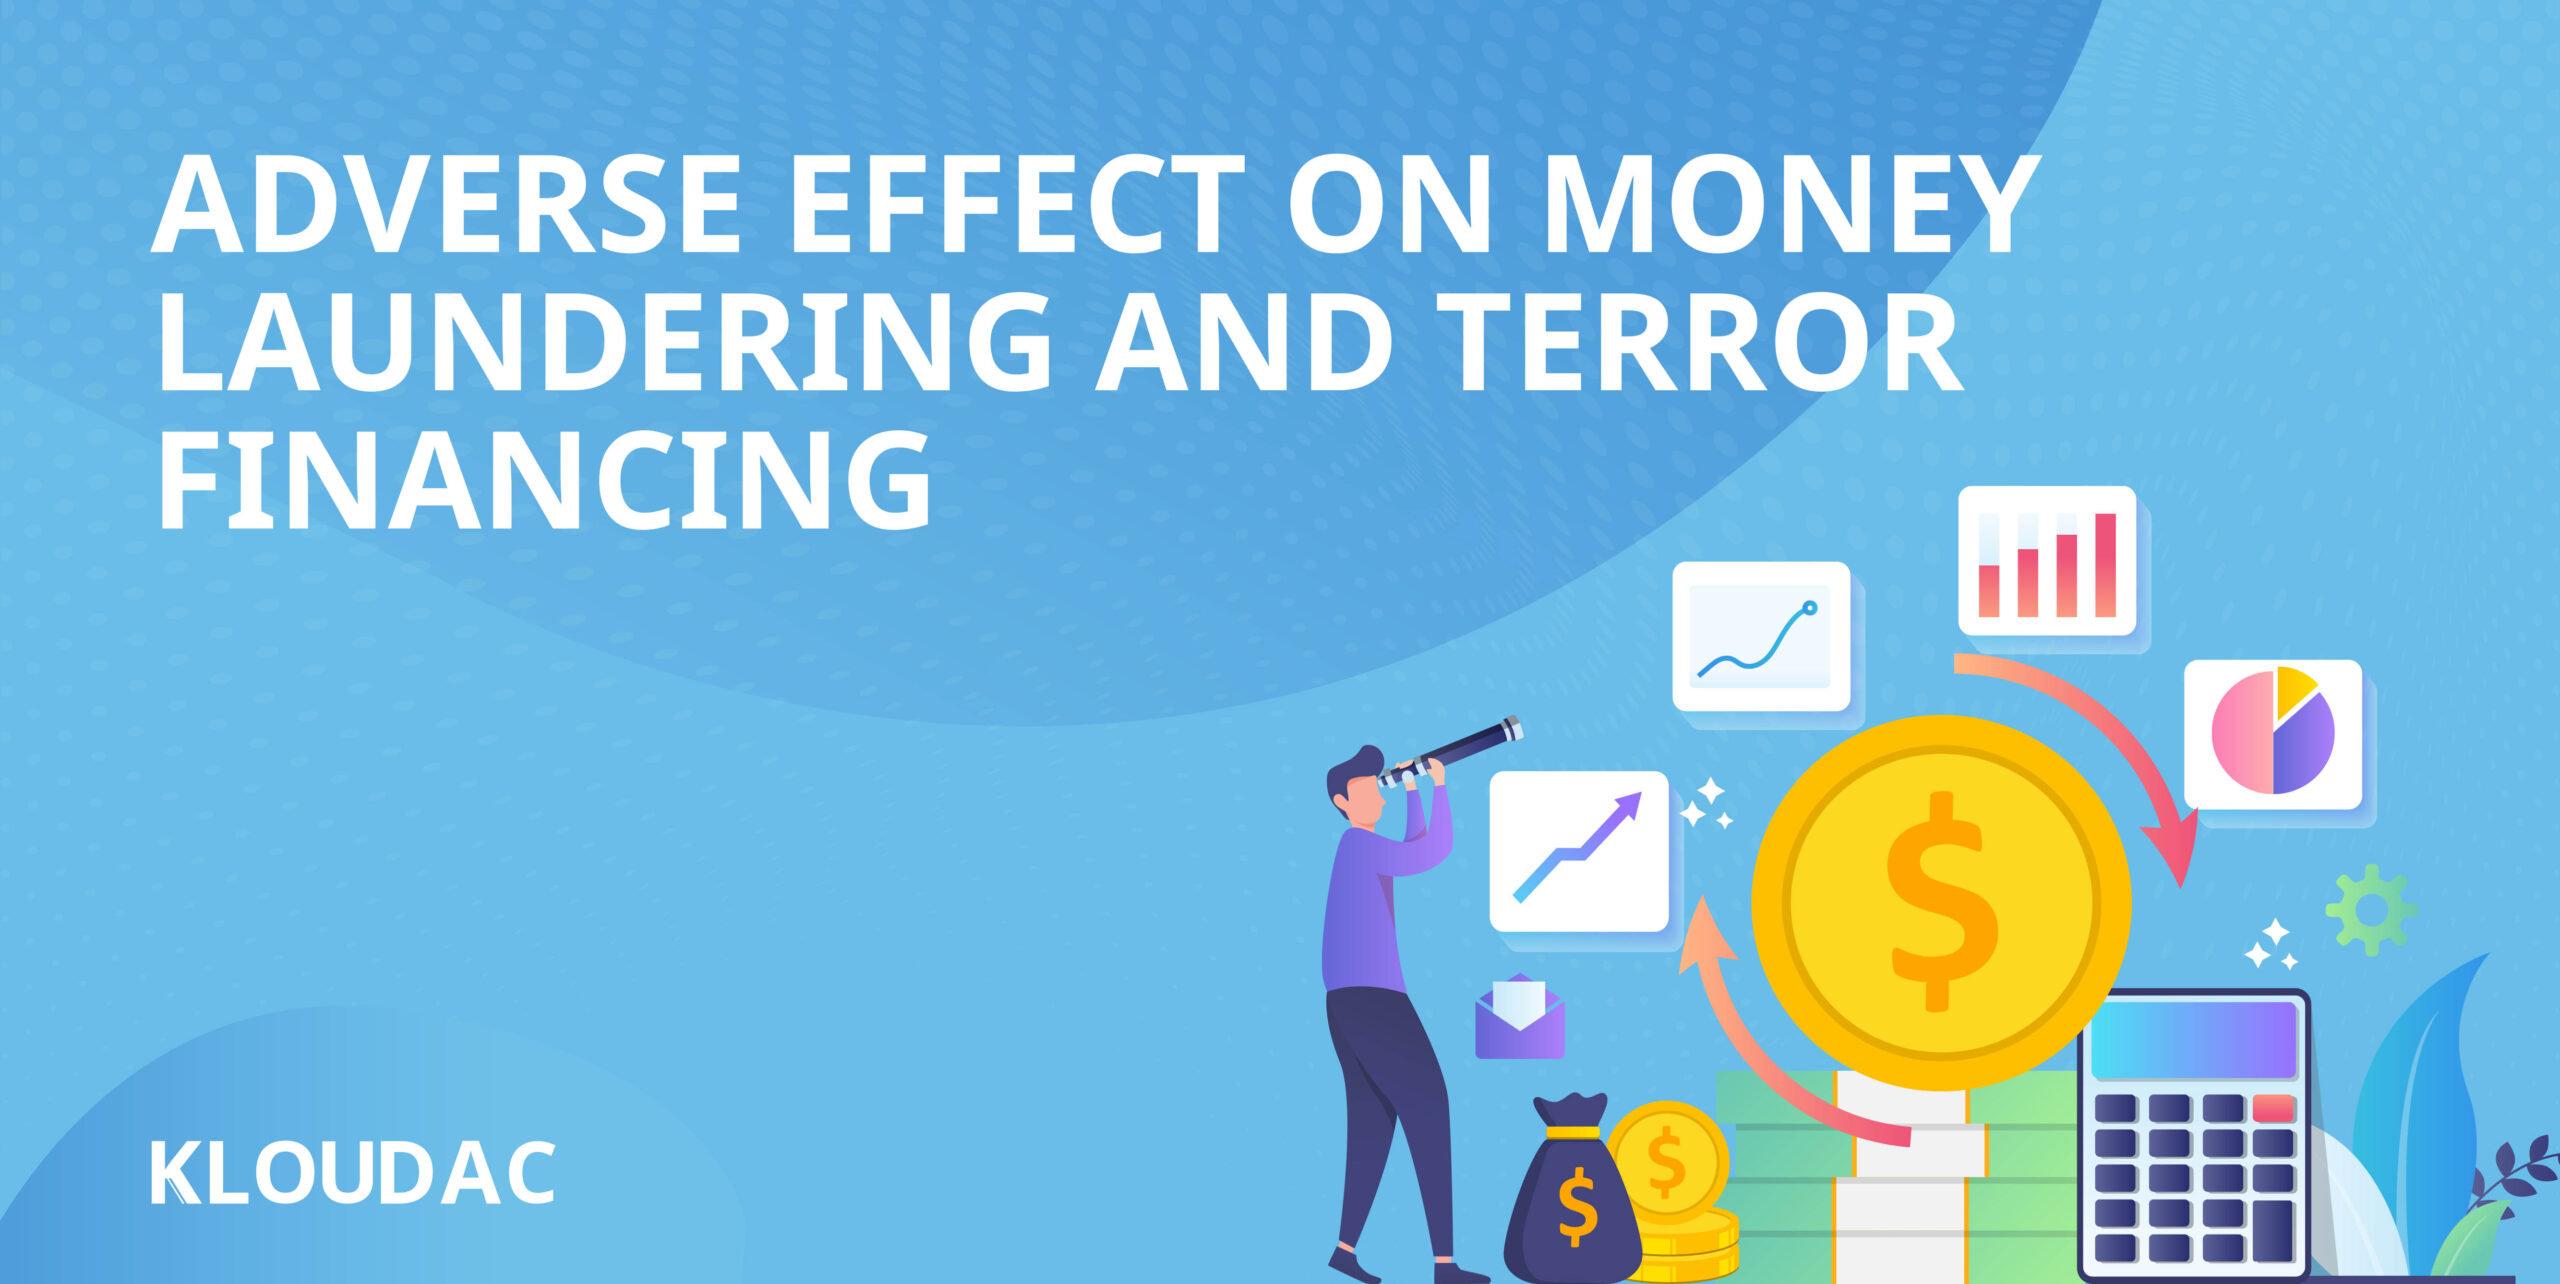 Adverse effect on money laundering and terror financing